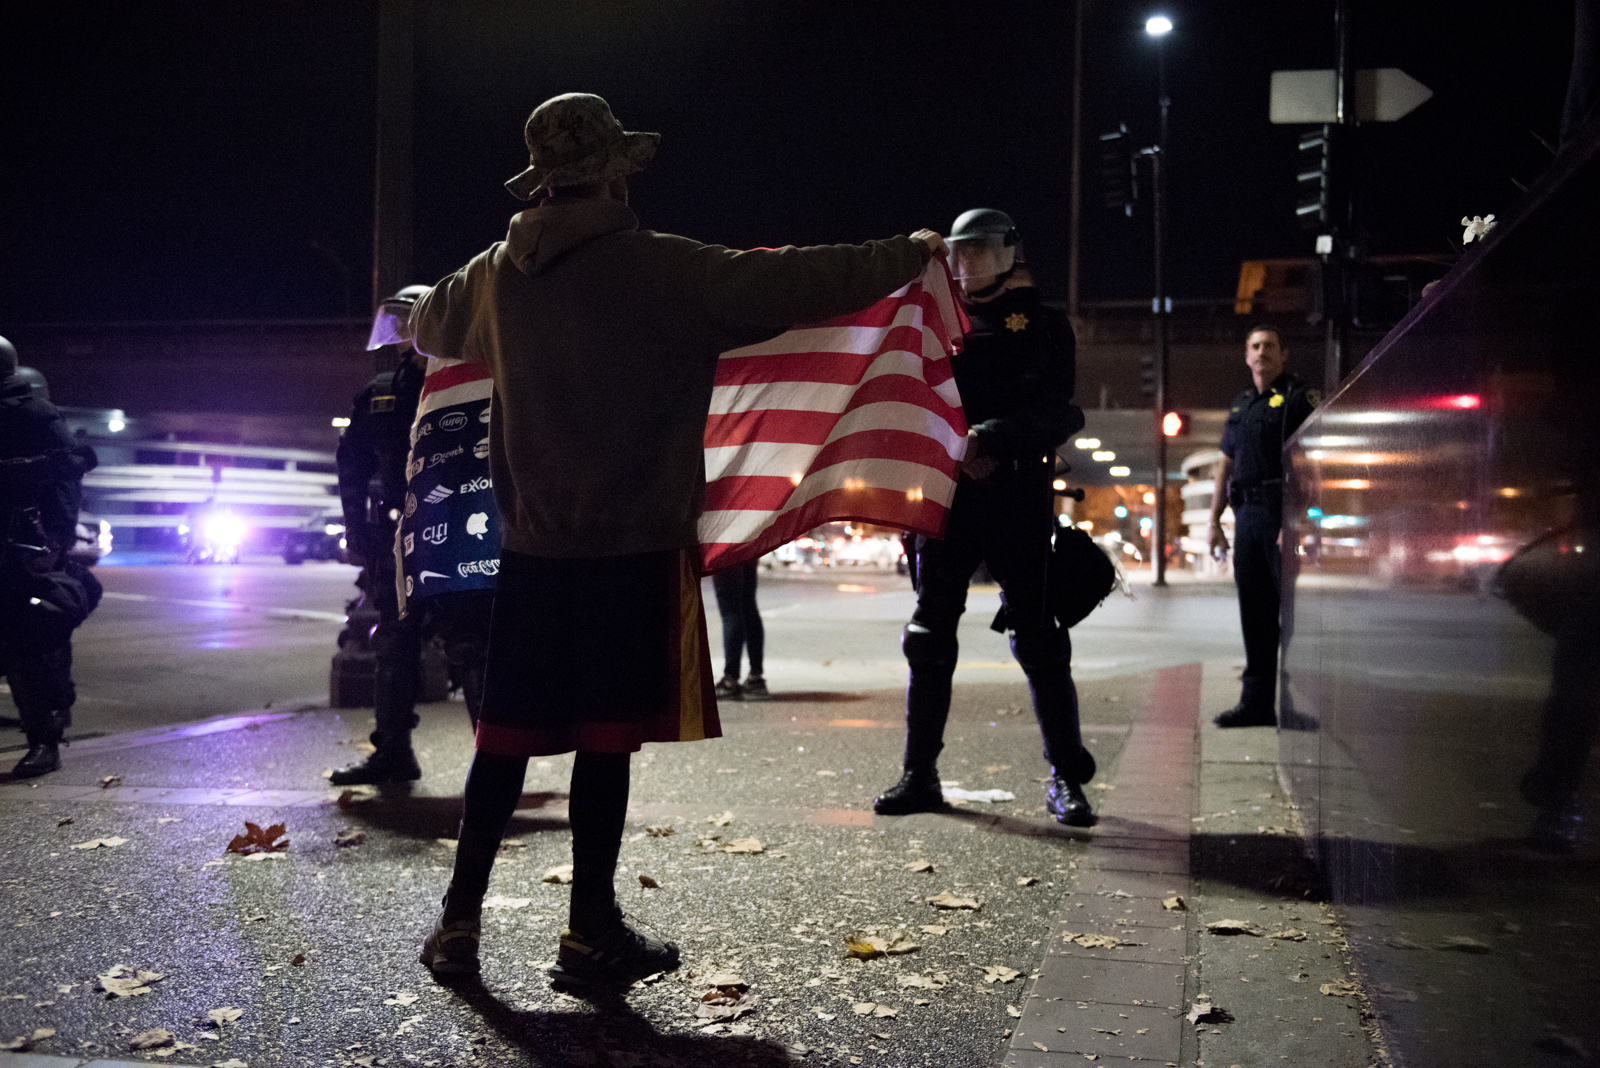 A protester stands in front of a police line on Broadway, near Interstate 880, in Oakland on Friday, October 11, 2016. | Rosa Furneaux/Oakland North